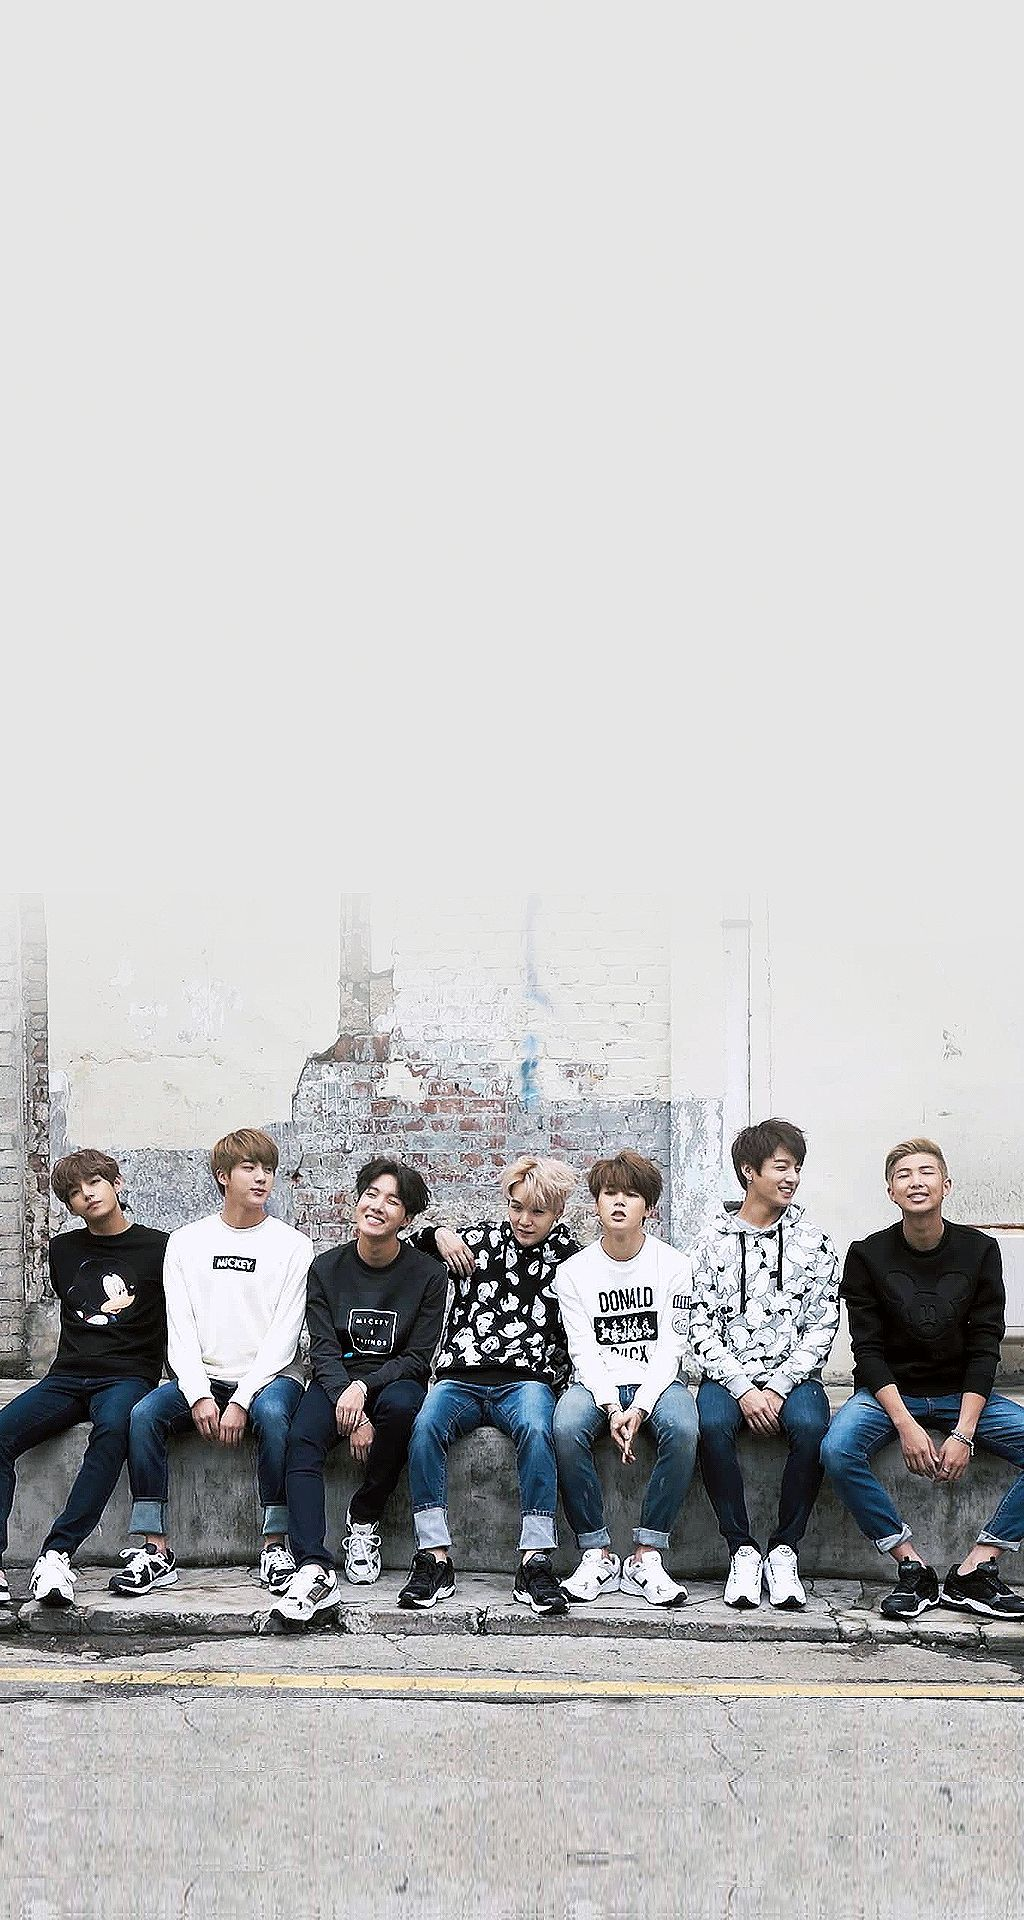 BTS Phone wallpaper – How to Decorate Your Phones With Wallpapers?